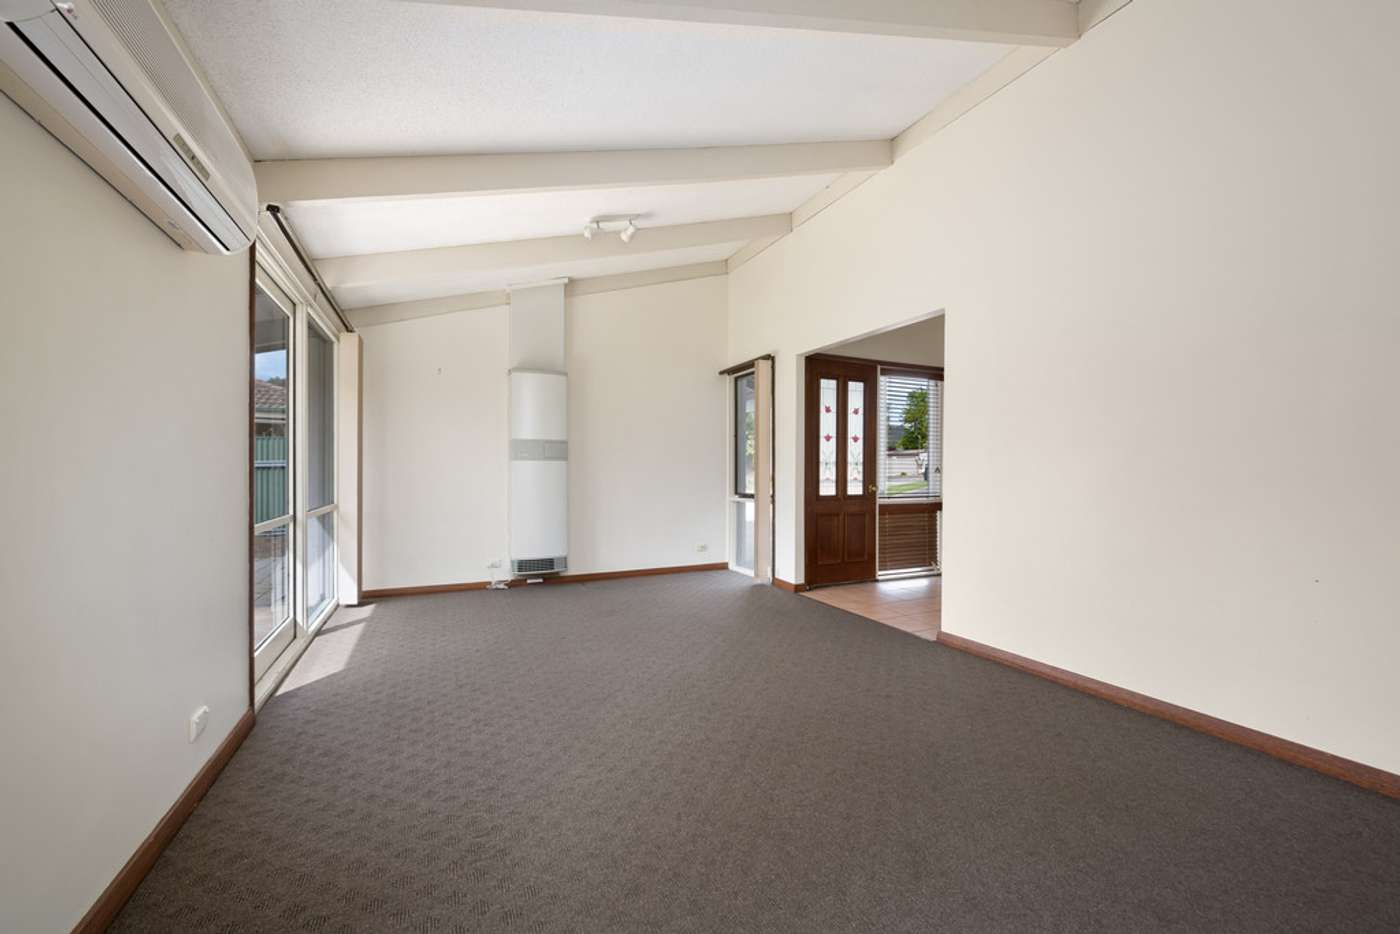 Sixth view of Homely house listing, 25 Wiltshire Crescent, Wodonga VIC 3690